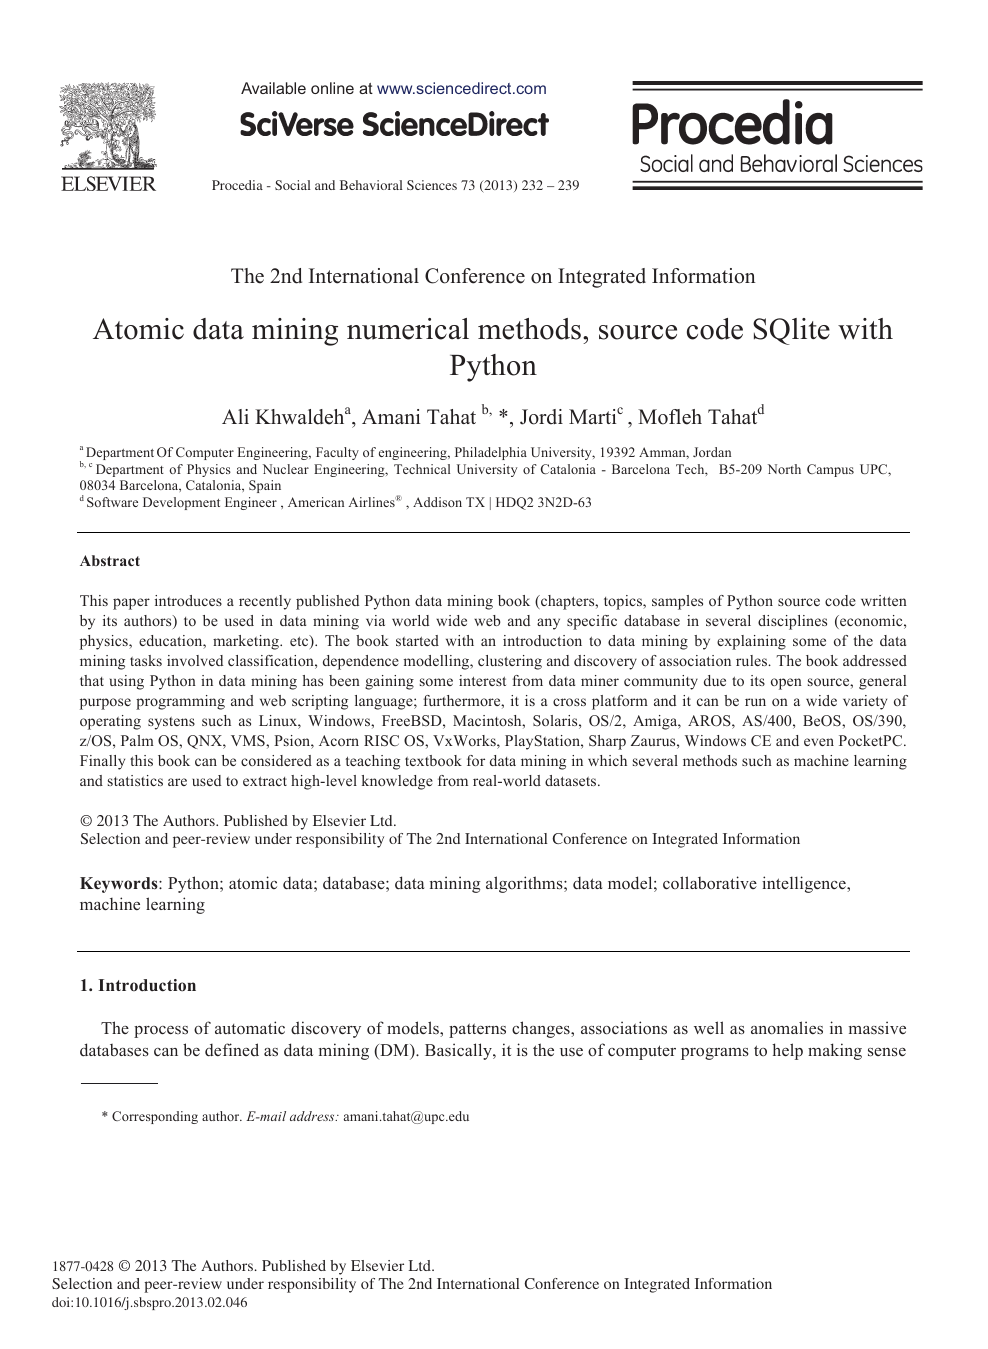 Atomic Data Mining Numerical Methods, Source Code SQlite with Python